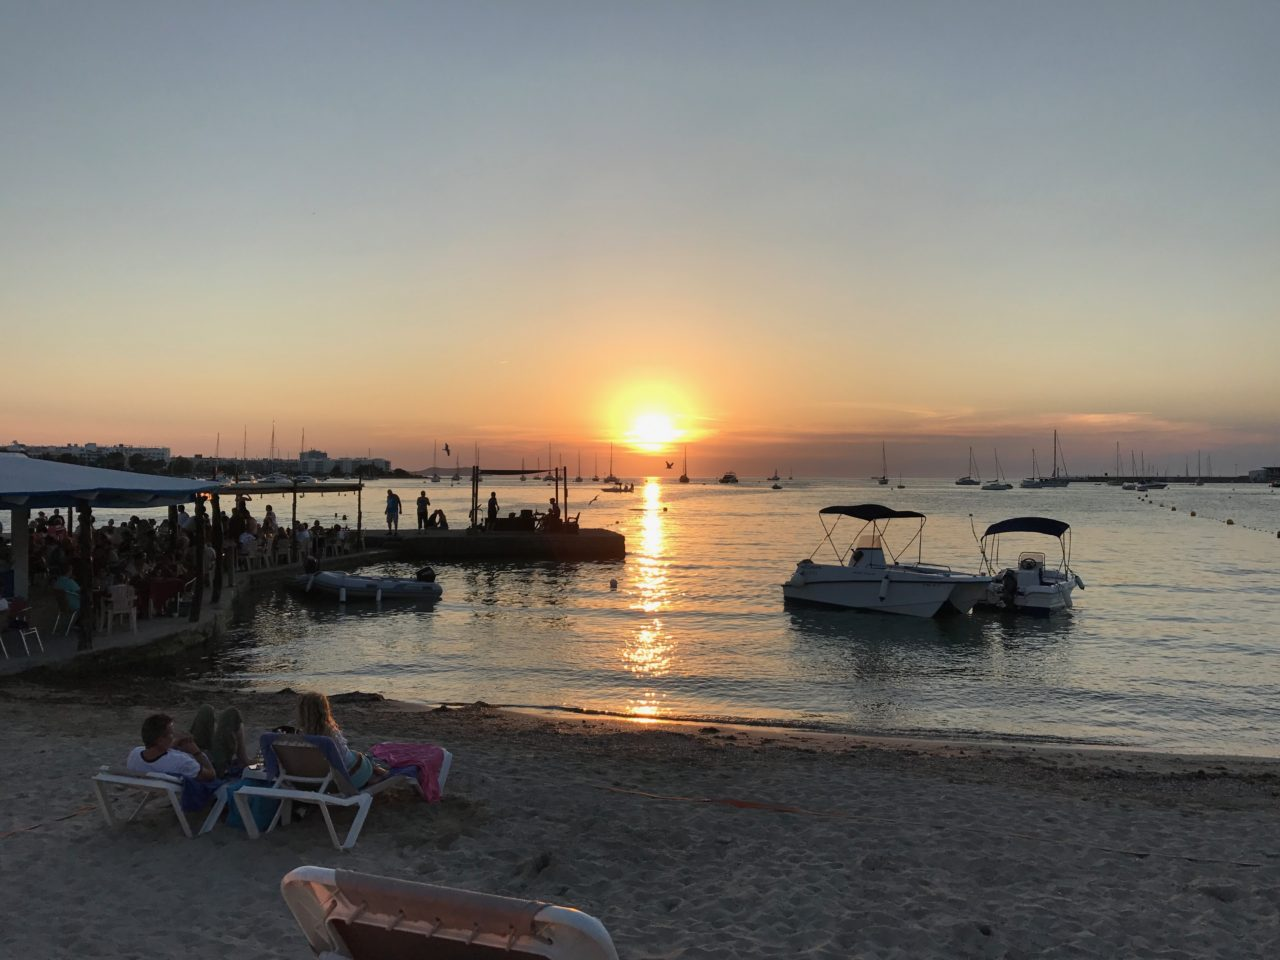 Beach Restaurant With People Watching The Sunset